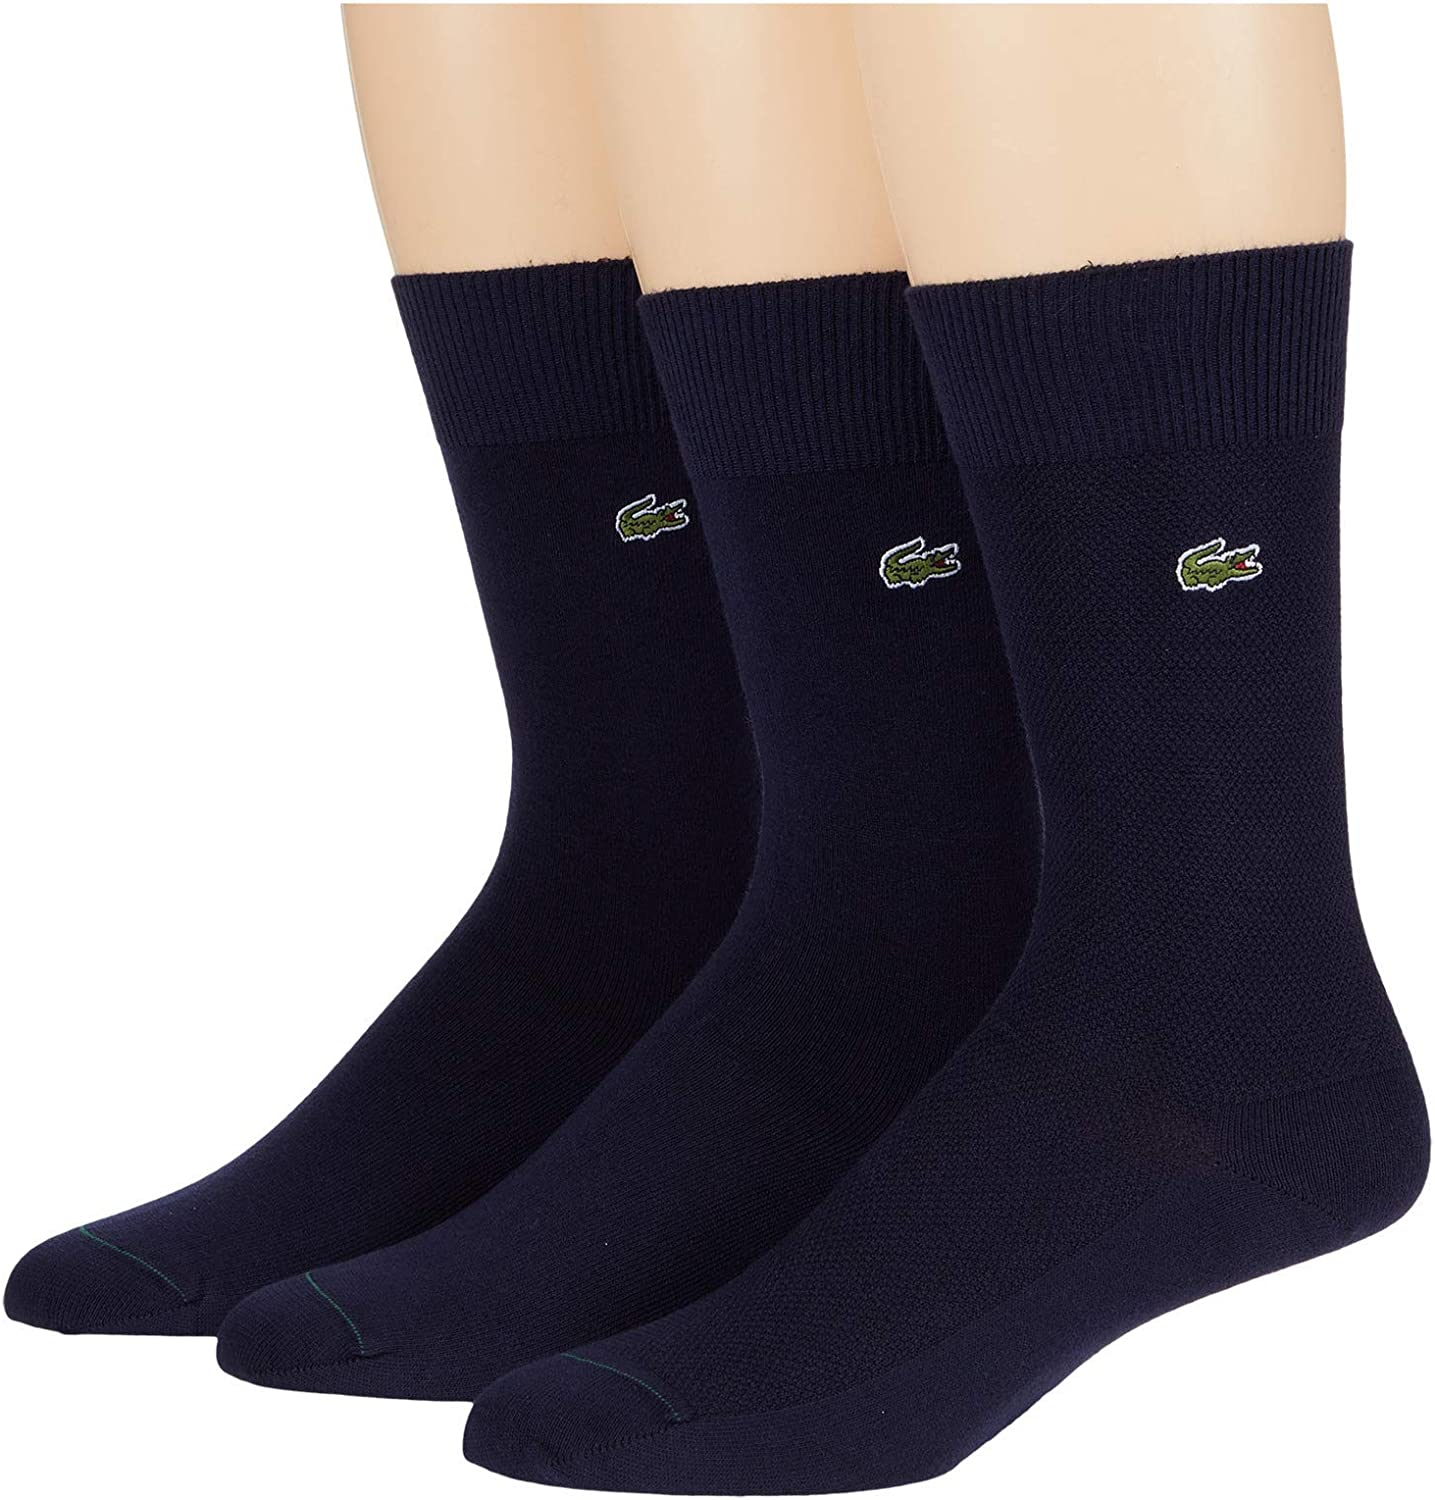 Lacoste Solid Jersey Pique Tube Socks